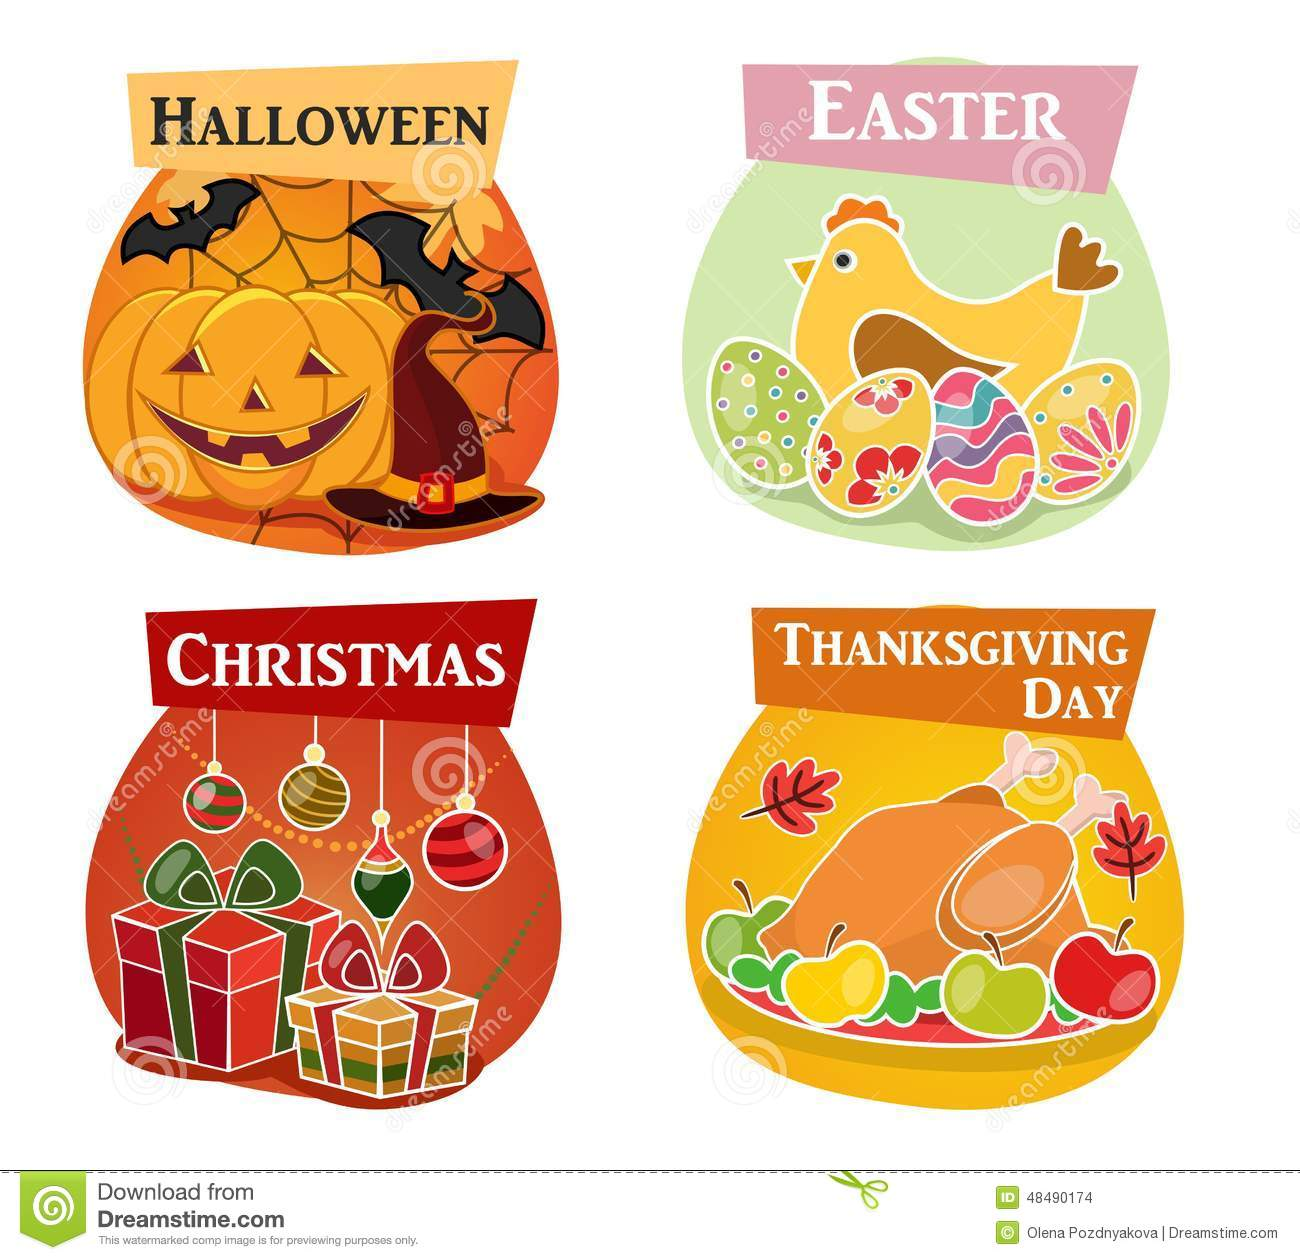 thanksgiving day easter halloween christmas flat icons - Halloween And Christmas